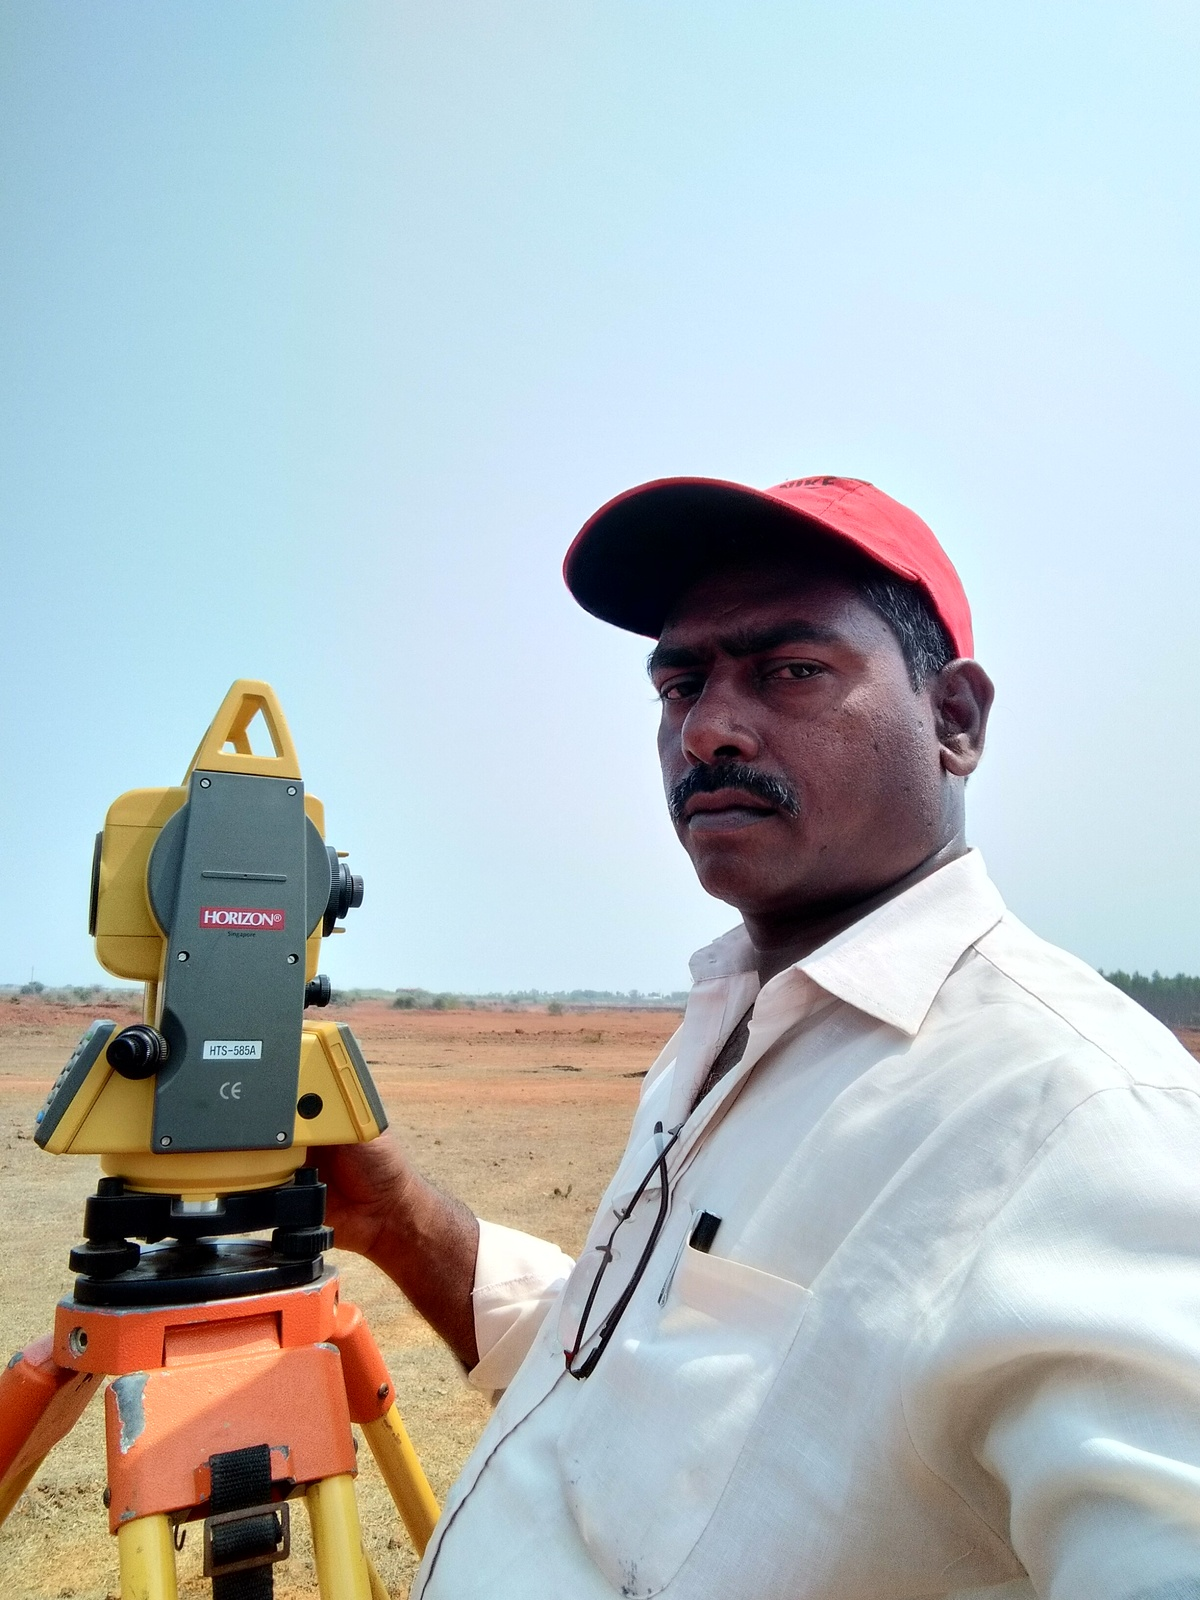 Serious Surveyor in India